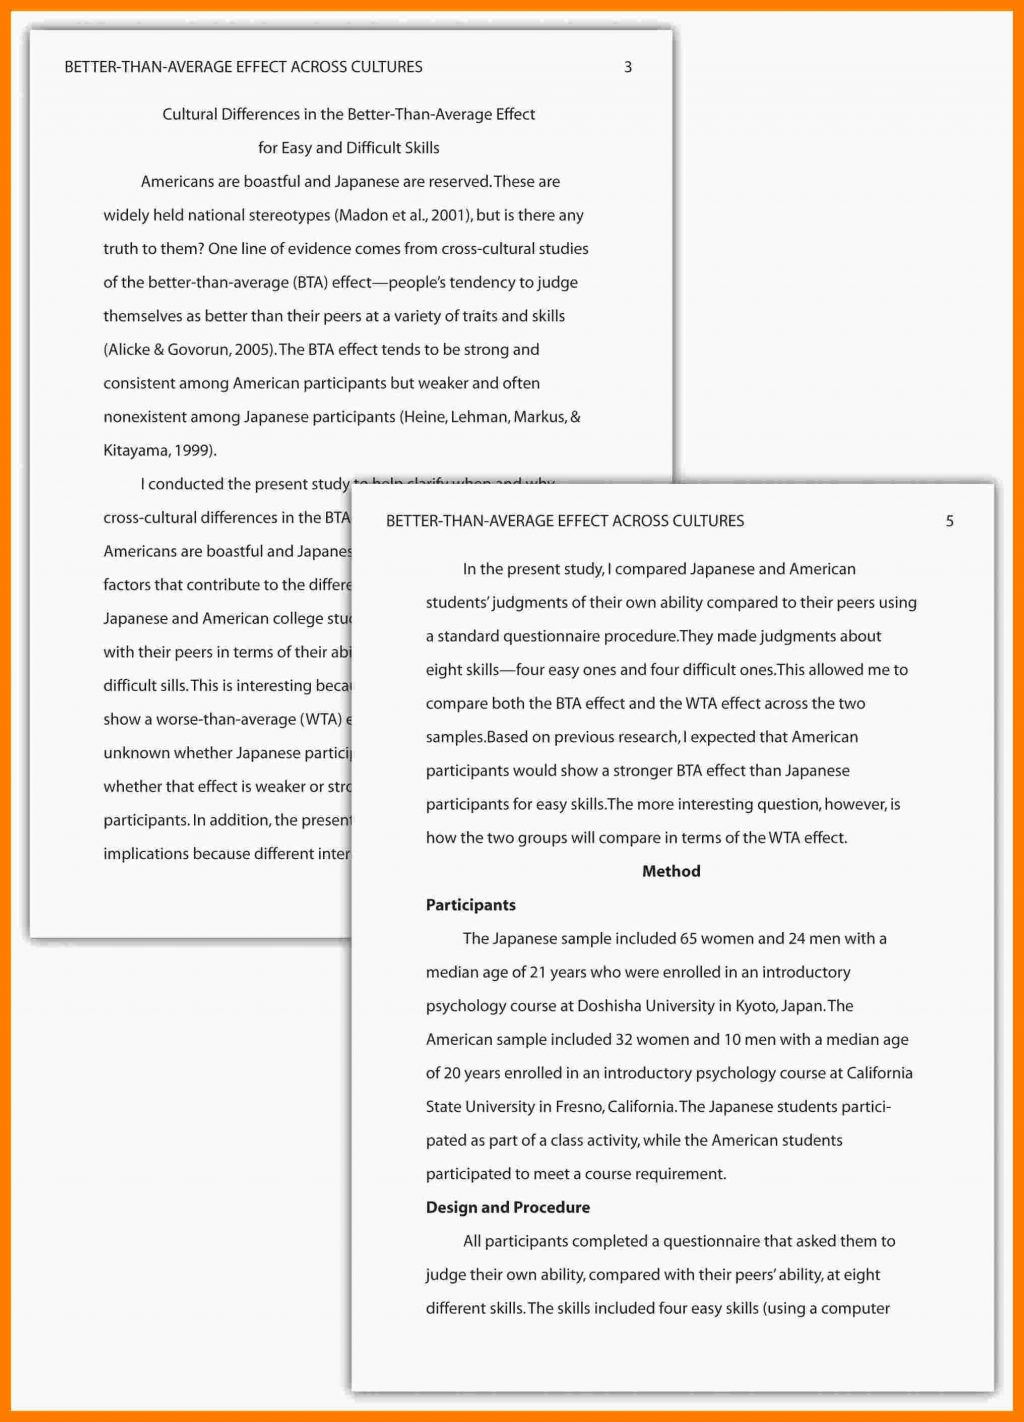 023 Apa Style Paper Example Teller Resume Formatarch Papers In Non 1024x1422 Format Research Fearsome 2018 Full